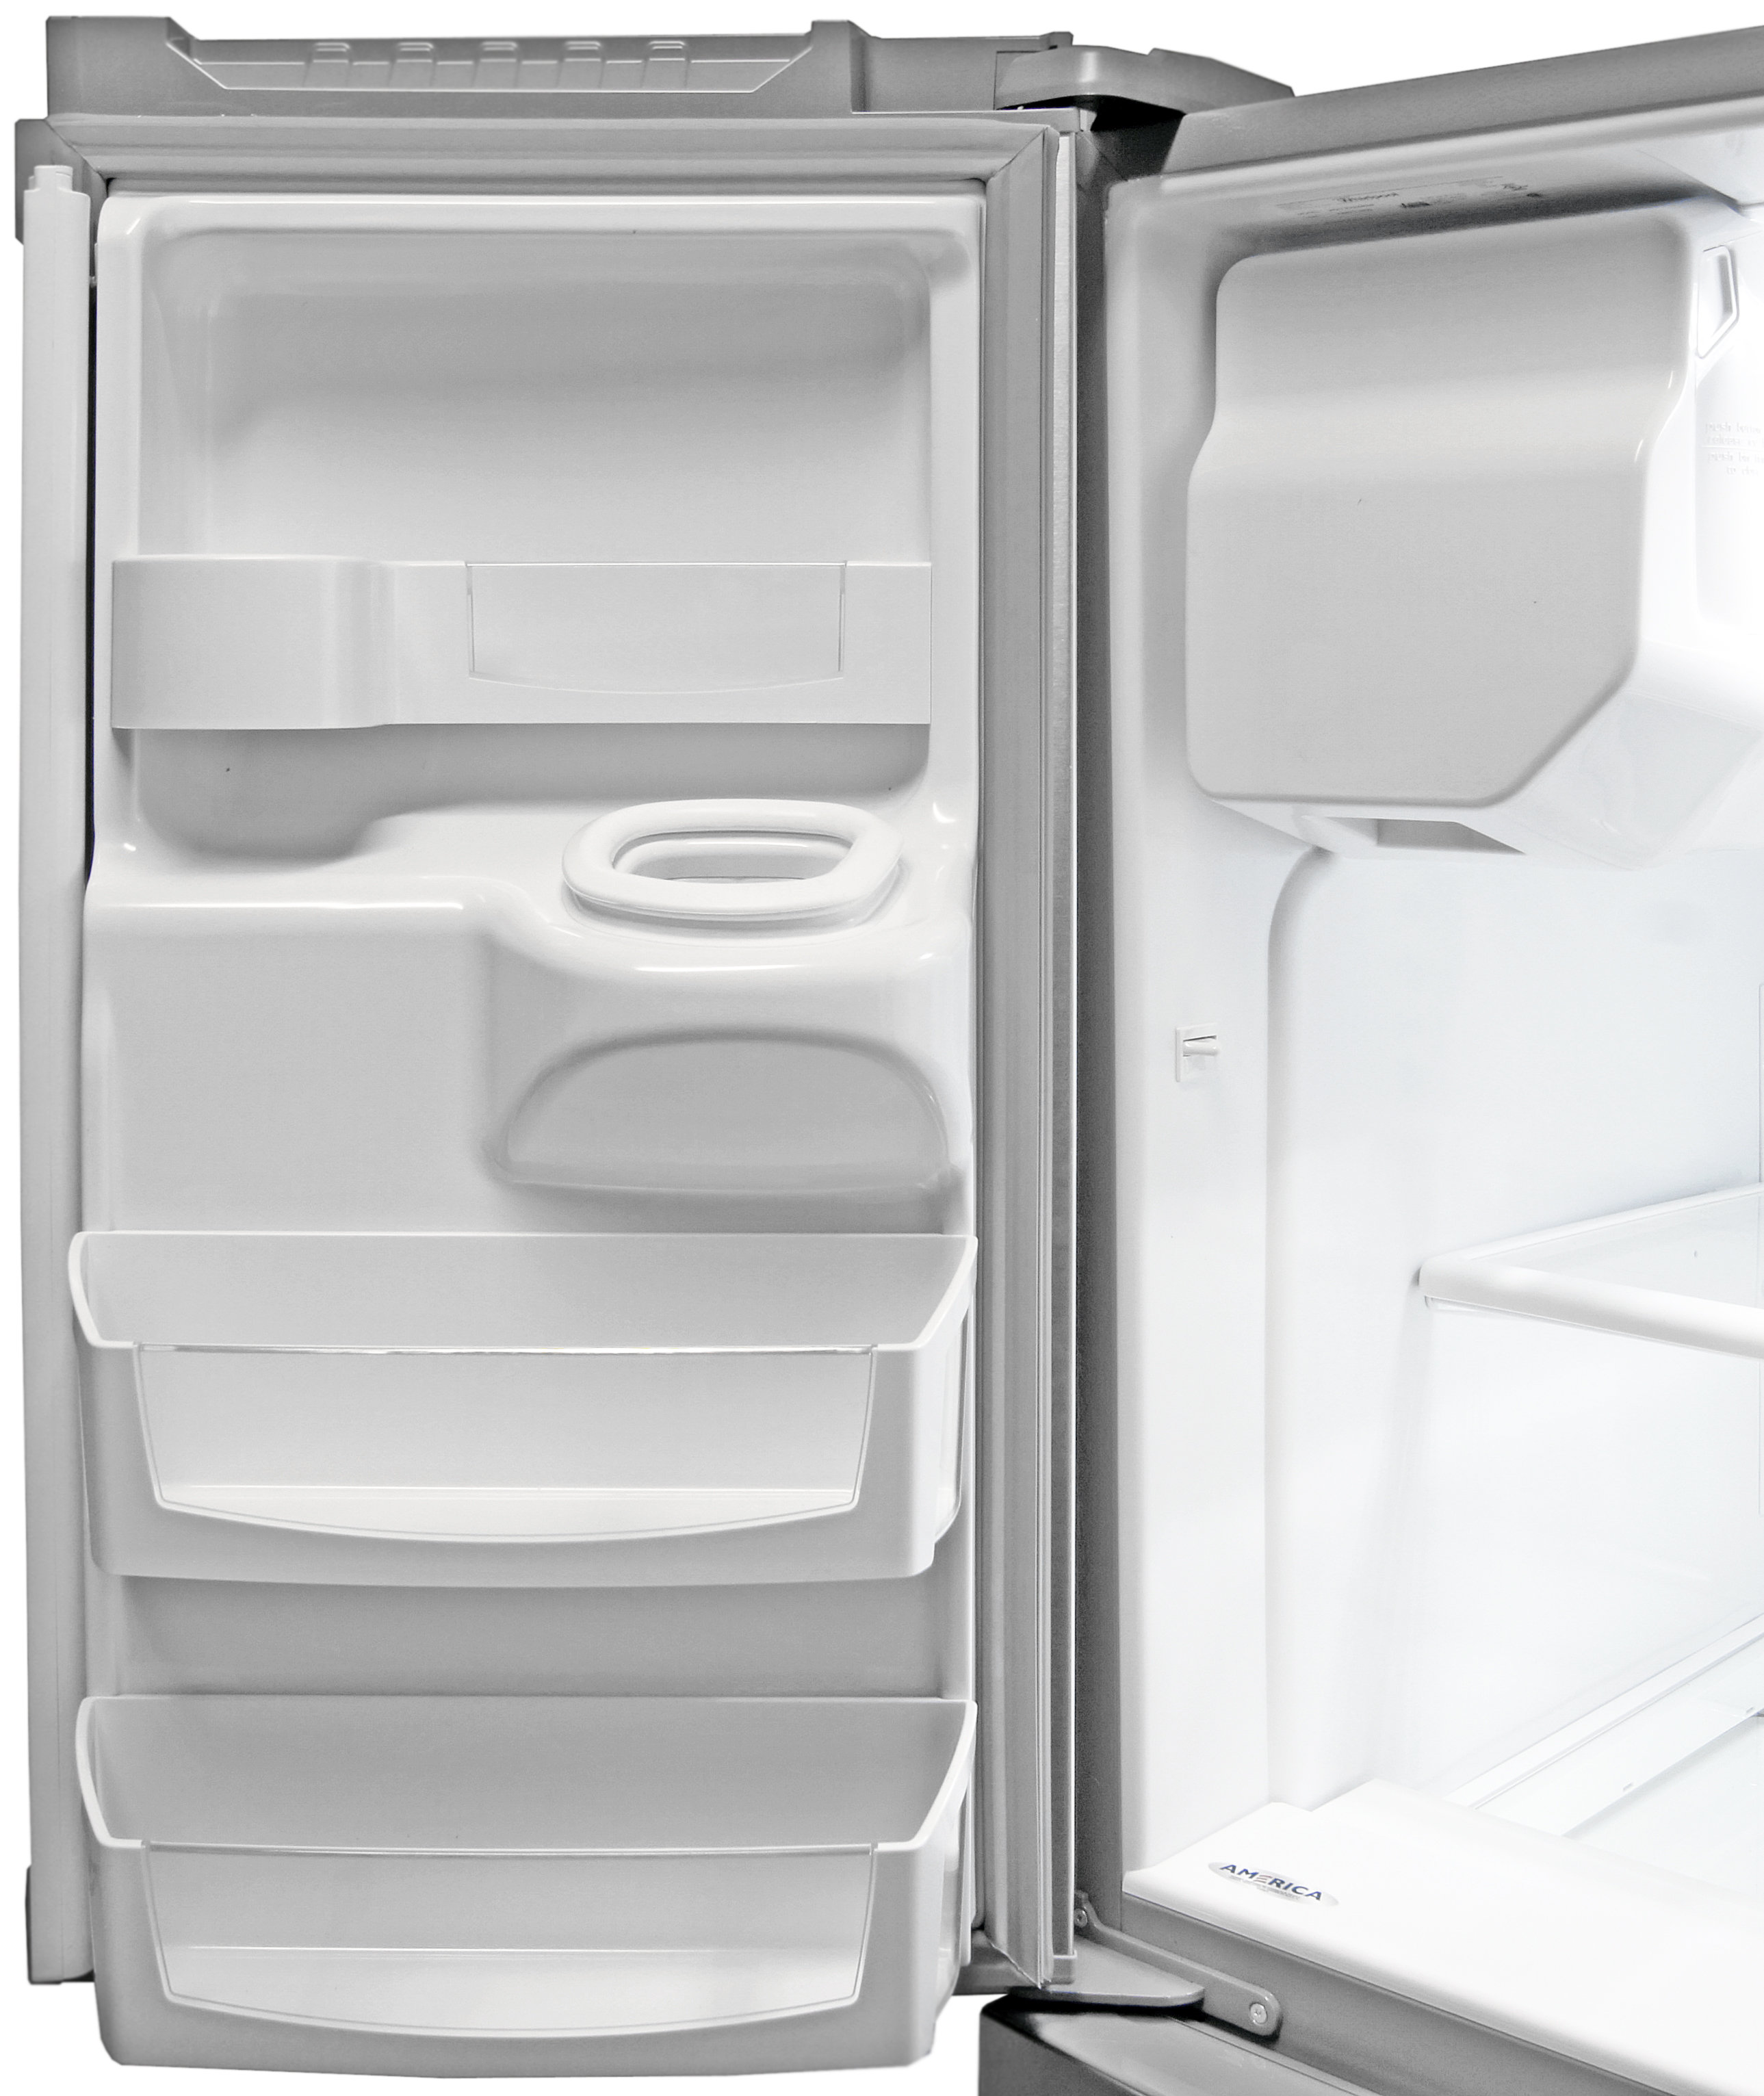 The Whirlpool WRX735SDBM's left fridge door has several shelves that contour around the ice dispenser.